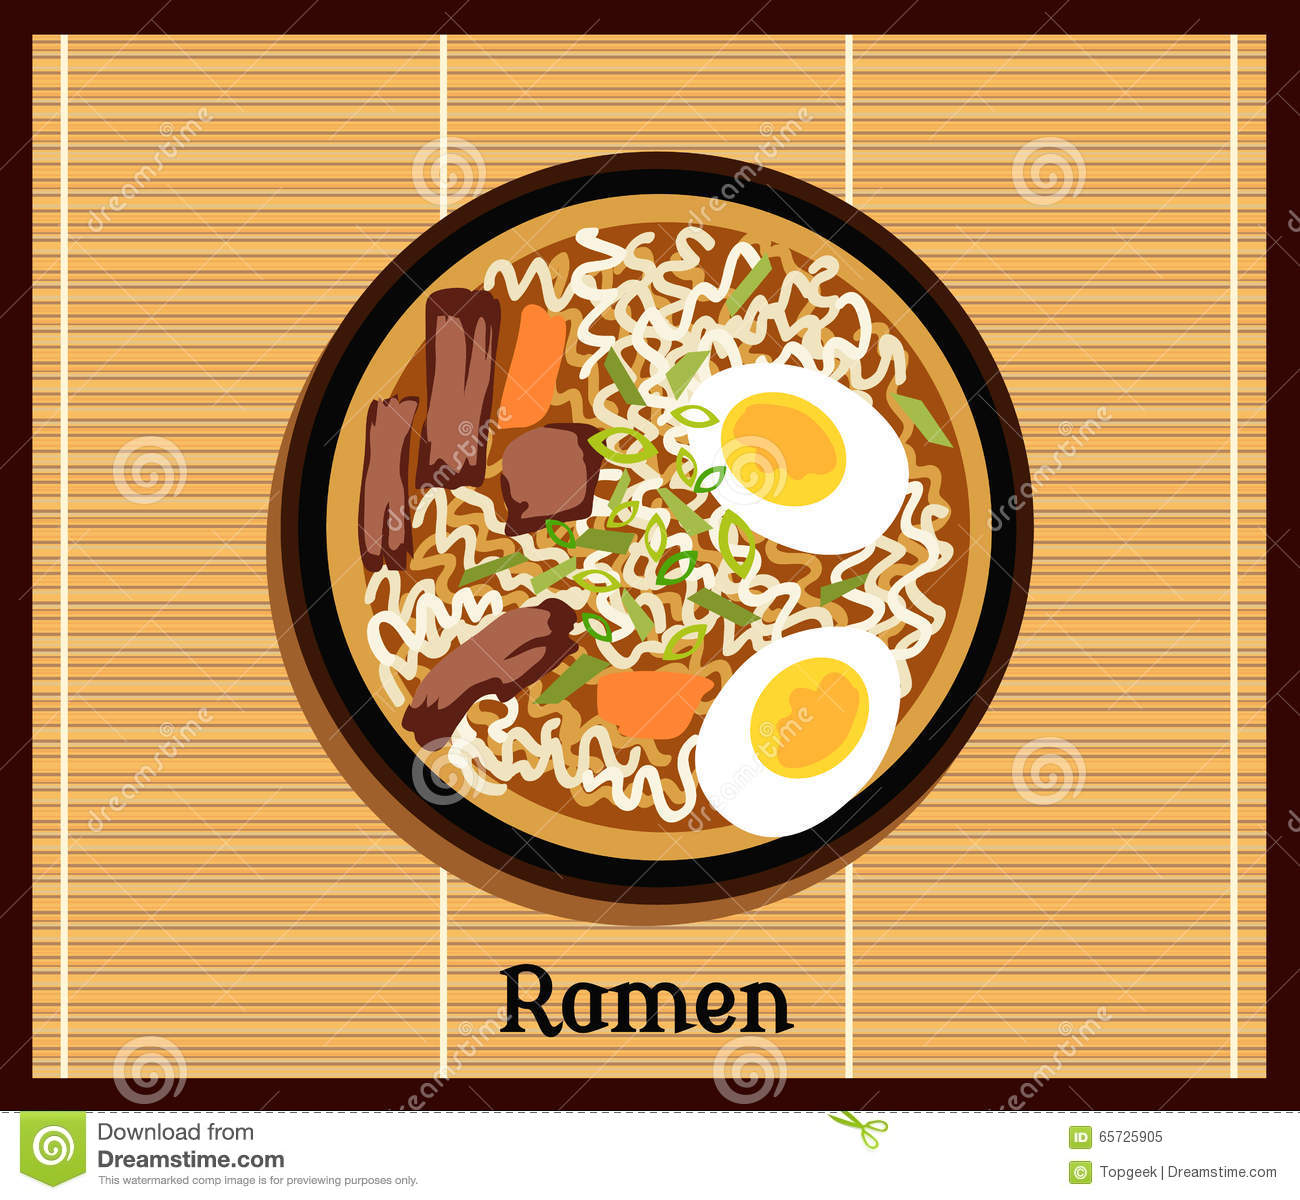 https://thumbs.dreamstime.com/z/japanese-ramen-concept-vintage-cartoon-noodles-poster-design-noodle-hot-soup-noodle-tonkotsu-pork-bone-65725905.jpg